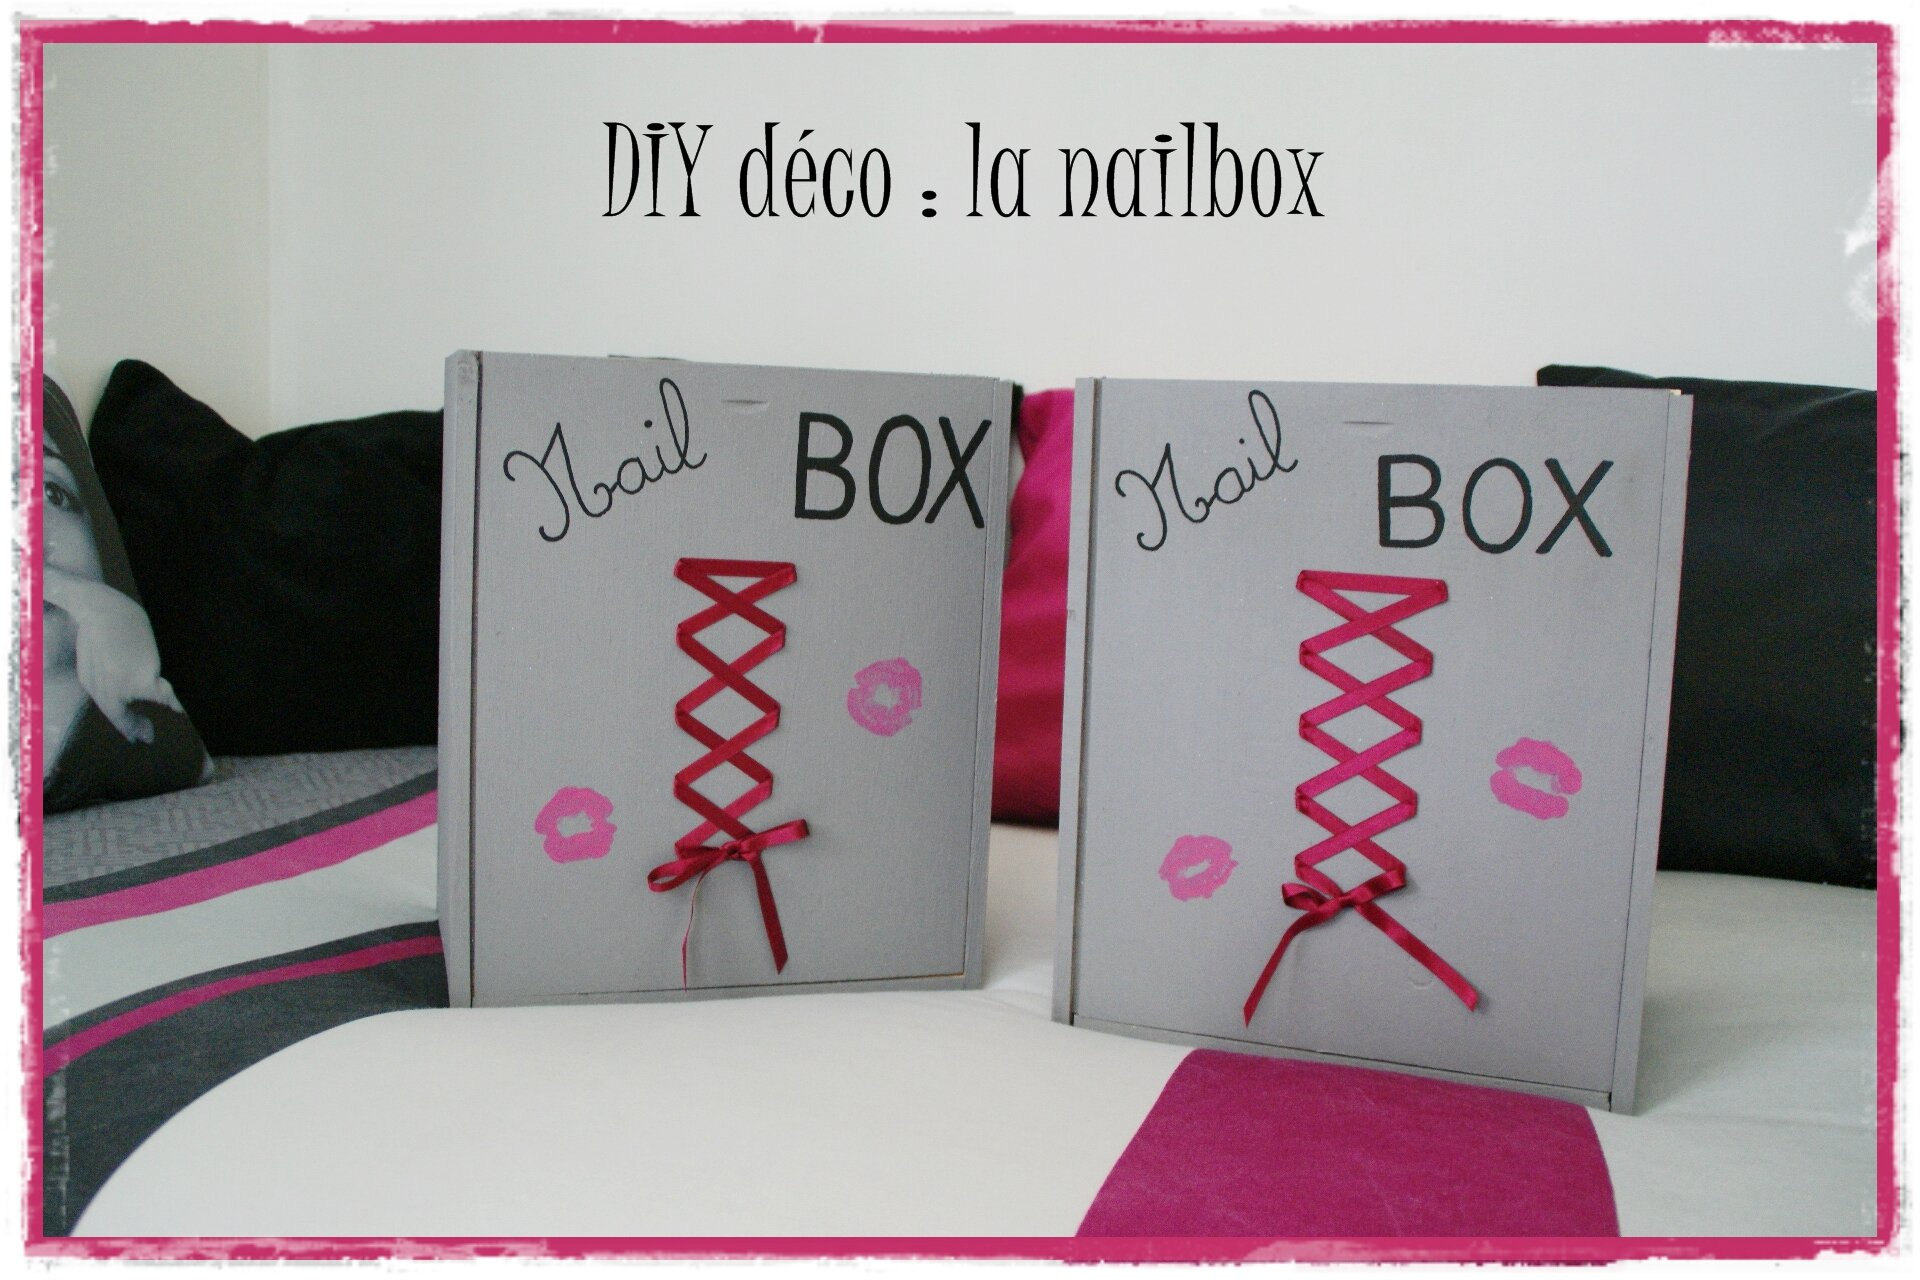 diy d co chambre d 39 ado des nailbox les p 39 tites d cos de lolo. Black Bedroom Furniture Sets. Home Design Ideas